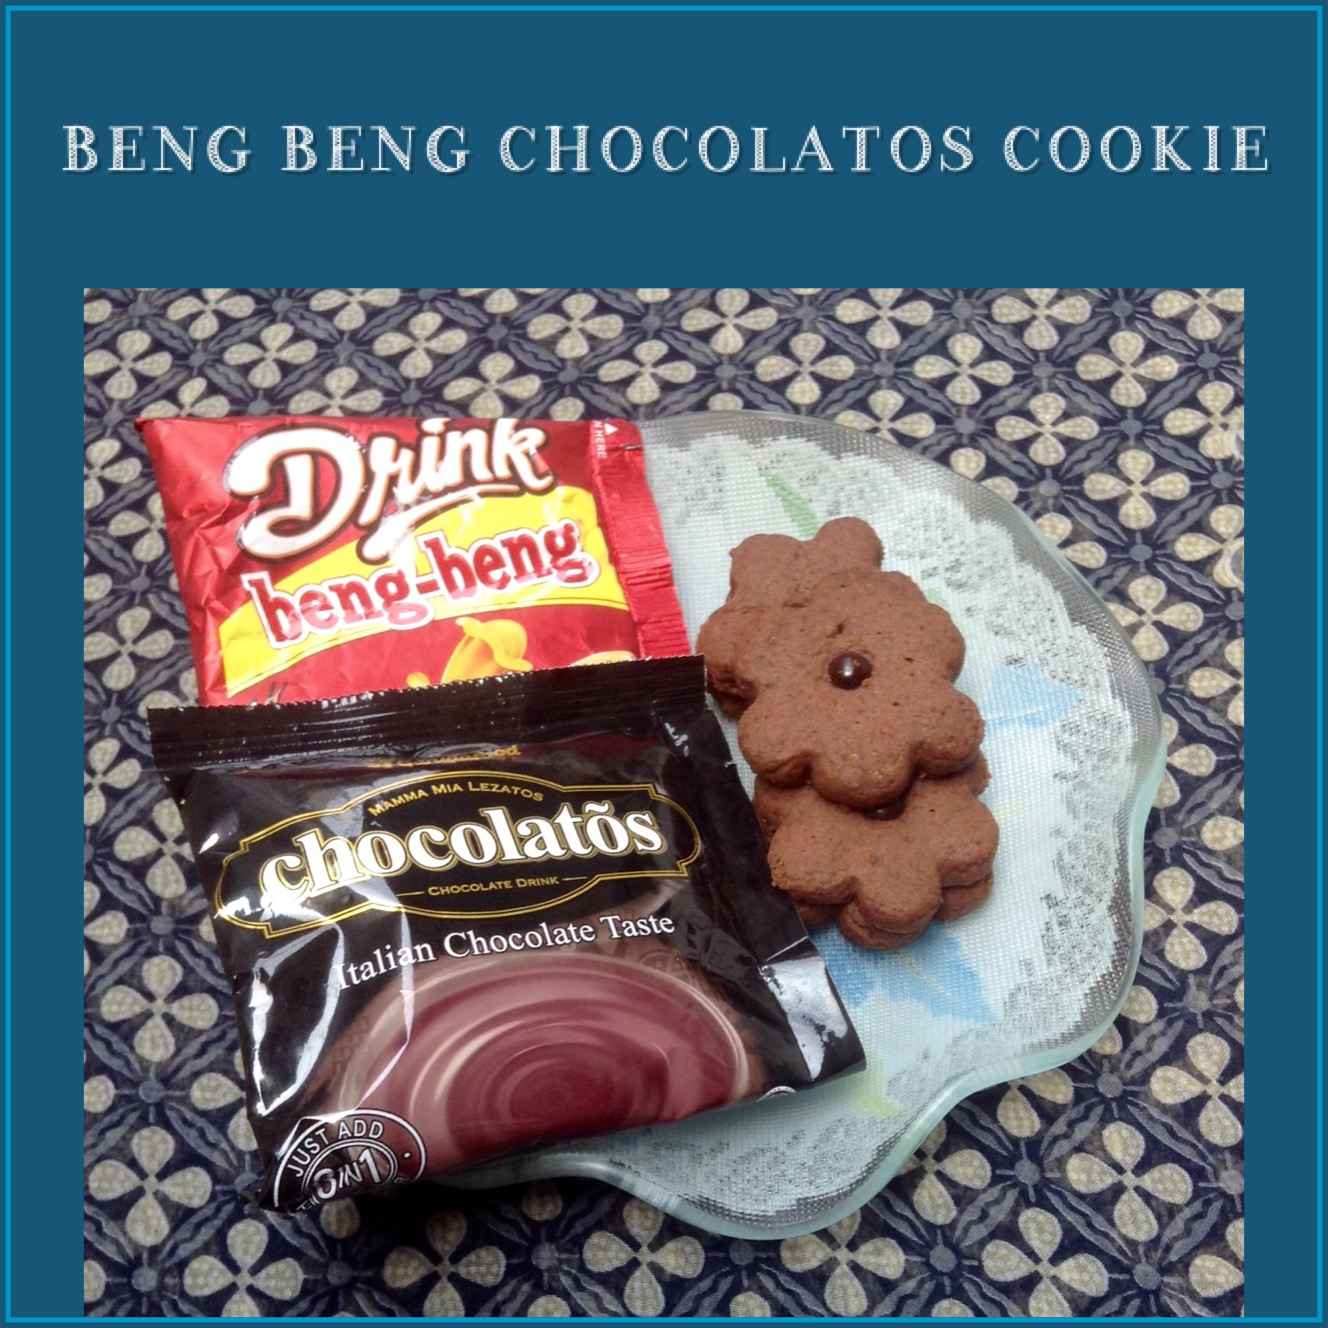 Resep Beng Beng Chocolatos Cookie